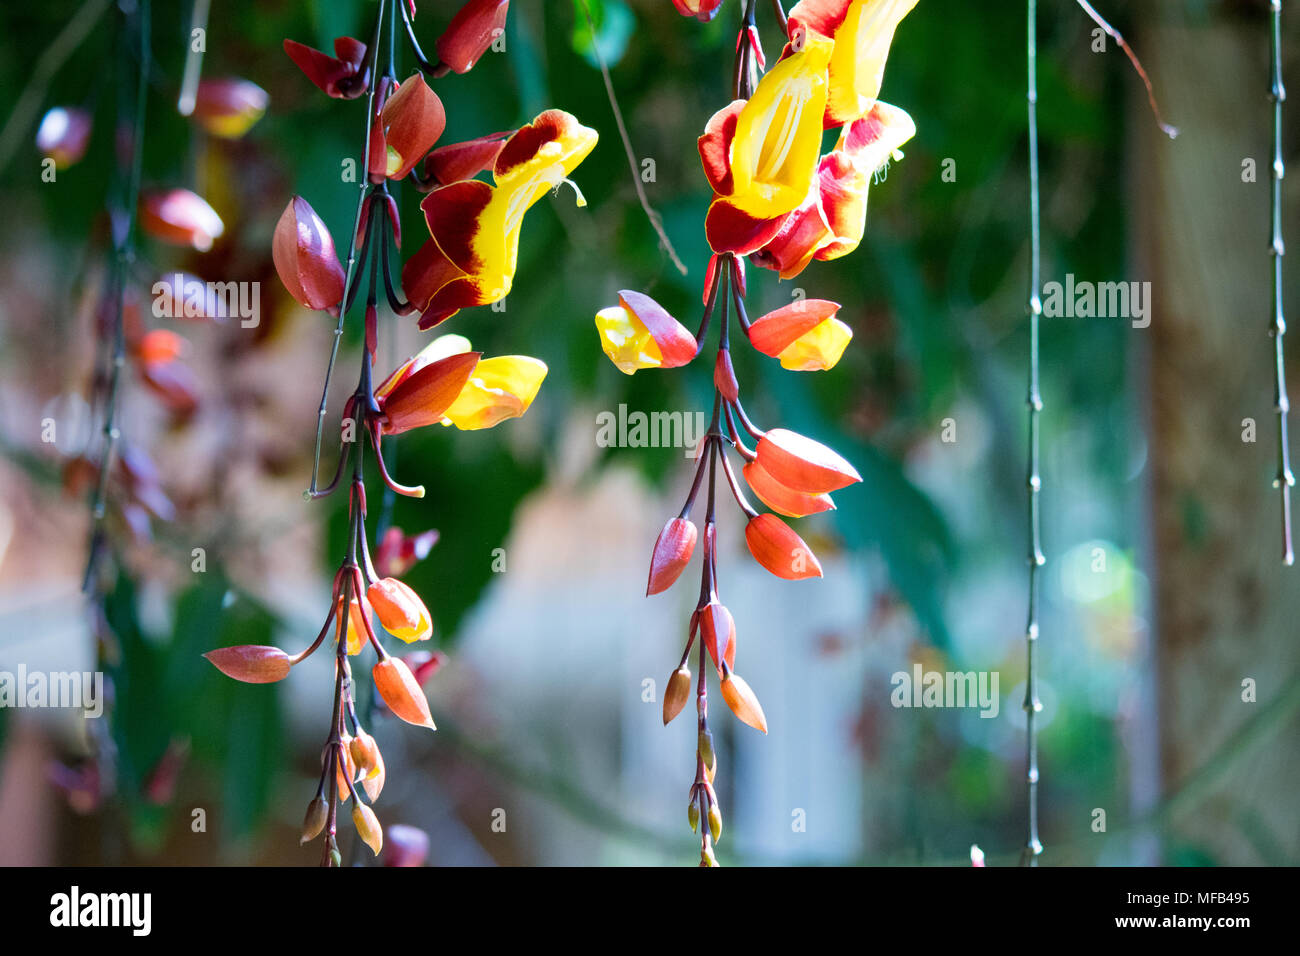 Exotic flower cultivation stock photos exotic flower cultivation beautiful wild tropical flower stock image izmirmasajfo Images